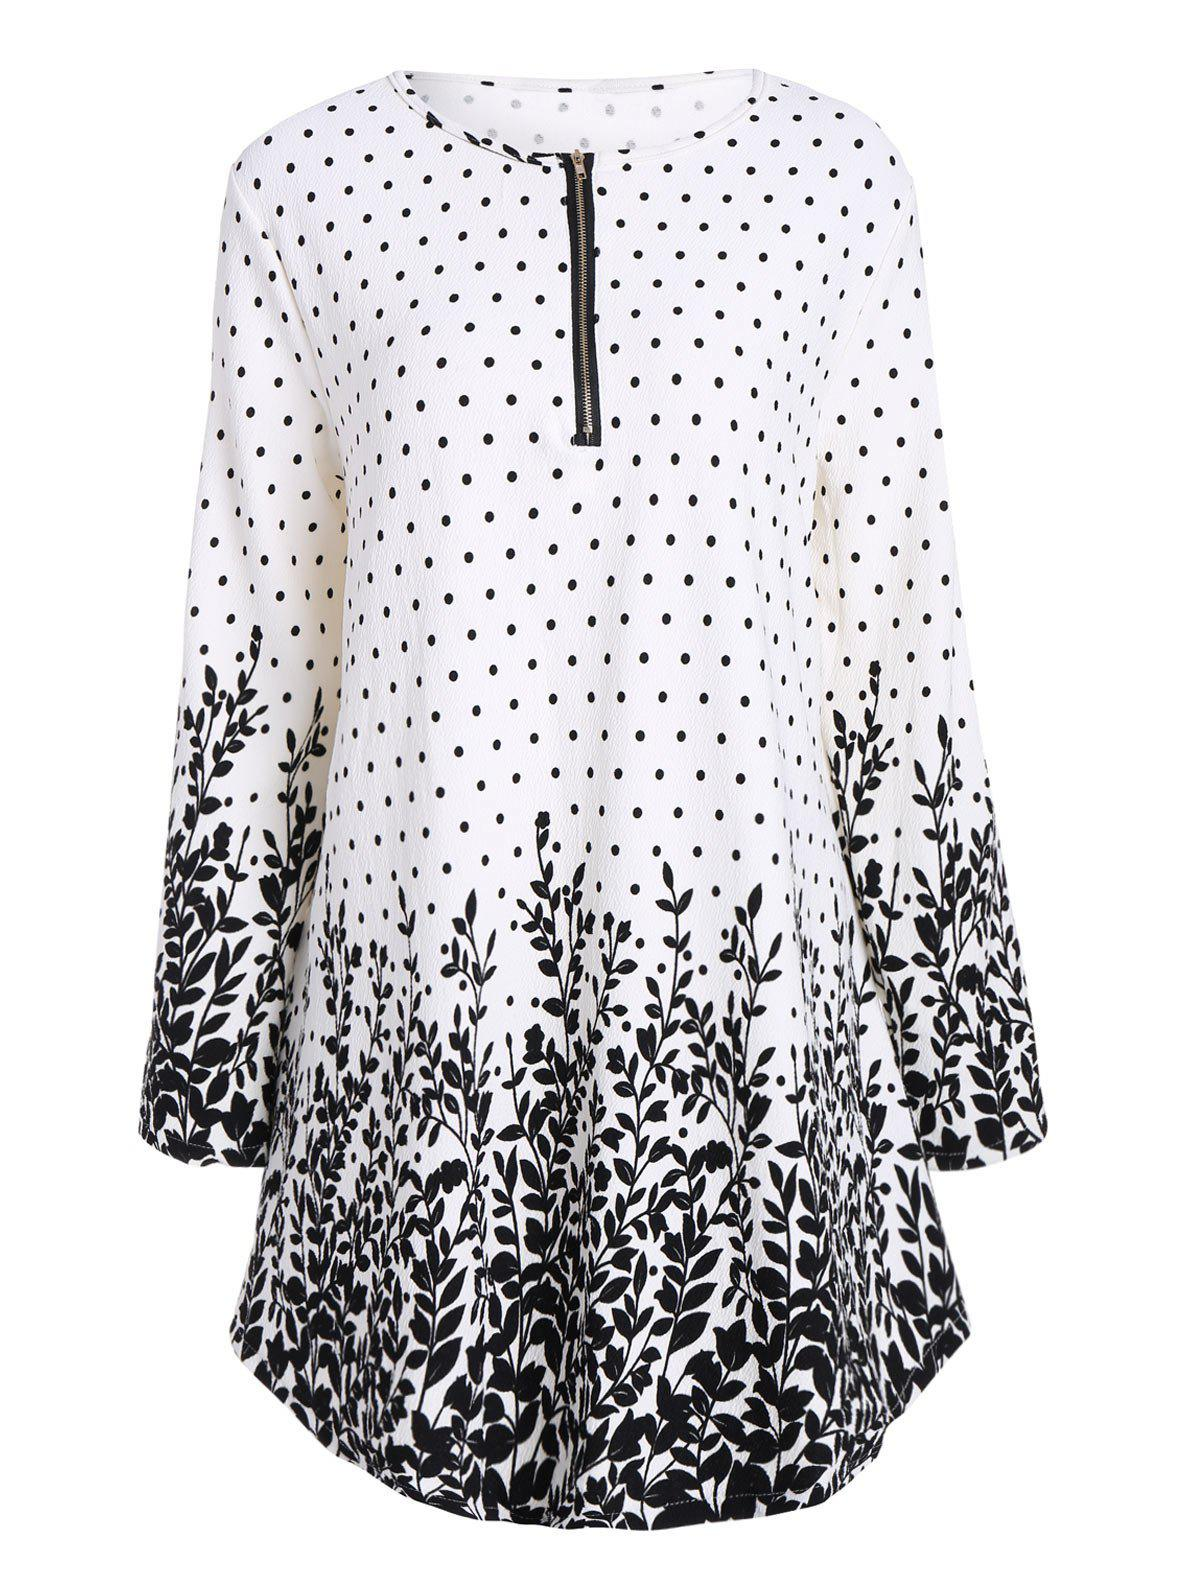 Polka Dot Floral Plus Size Half Zip Long Sleeve Top - WHITE 5XL